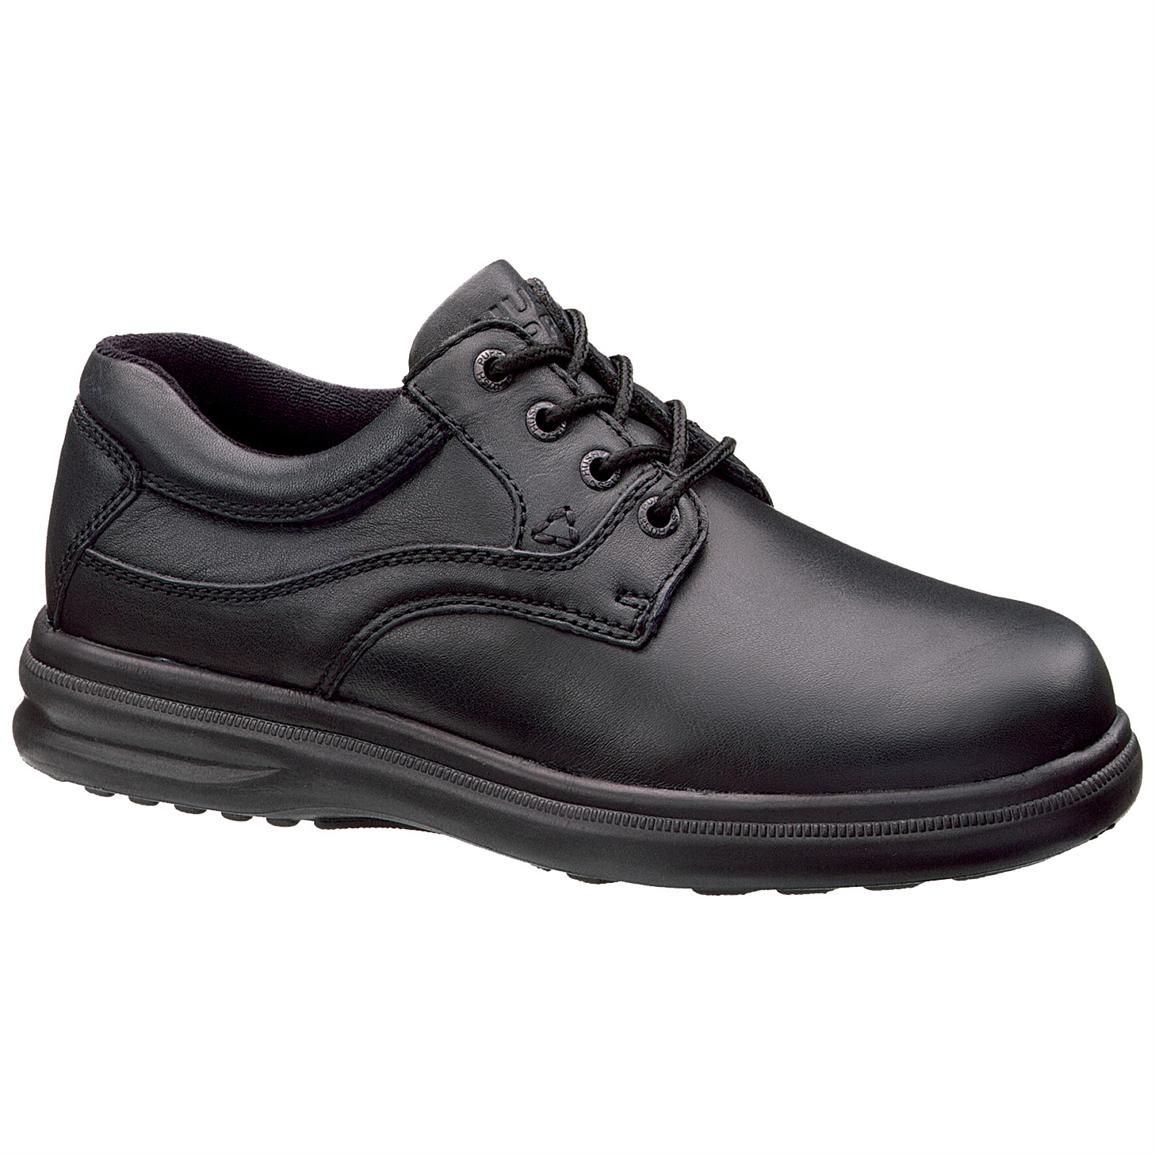 Men's Hush Puppies® Glen Shoes. Black